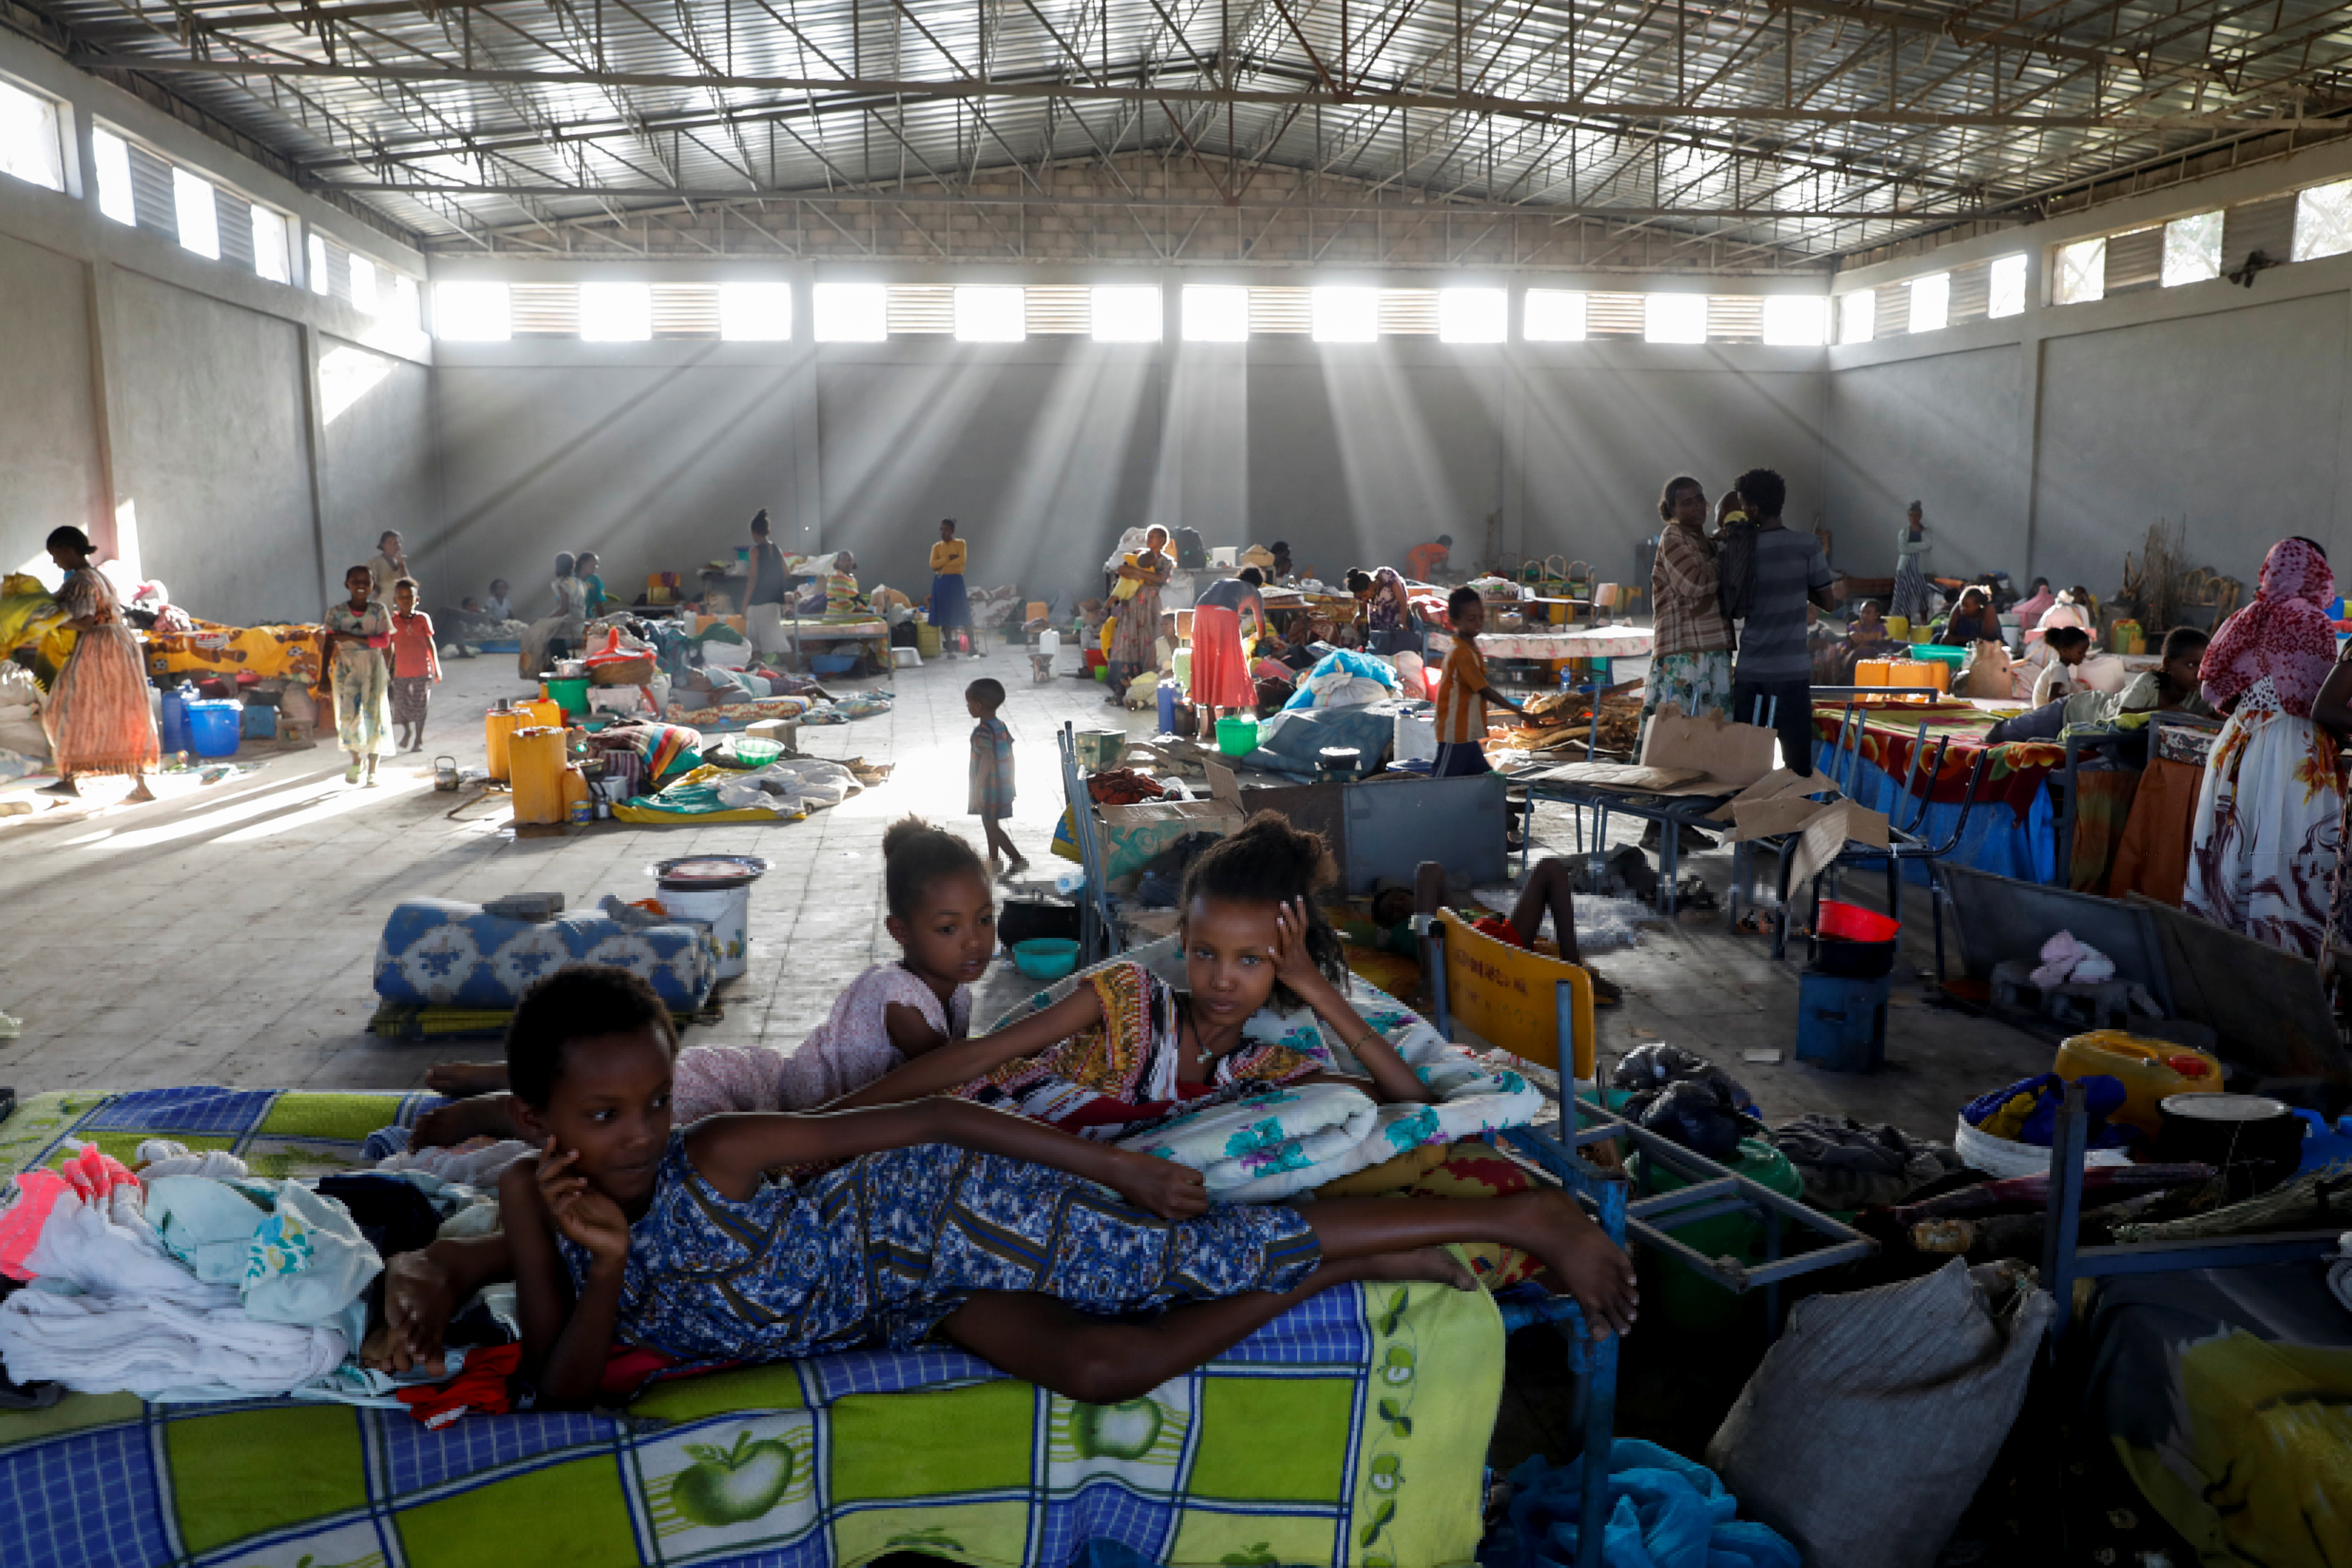 Displaced people are seen at the Shire campus of Aksum University, which was turned into a temporary shelter for people displaced by conflict, in the town of Shire, Tigray region, Ethiopia, March 14, 2021. REUTERS/Baz Ratner     SEARCH